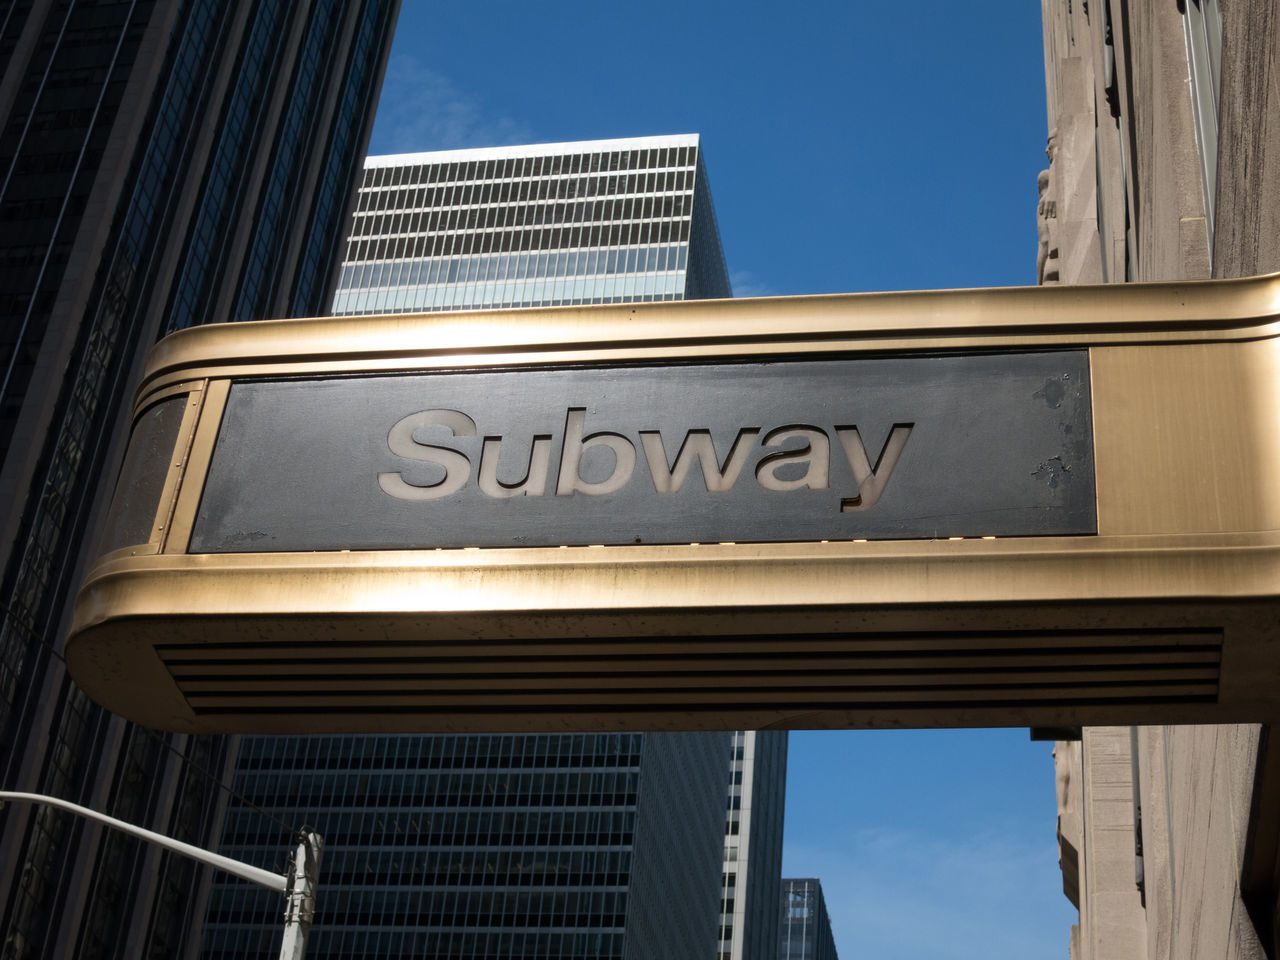 New York City Subway entrance, gold sign. Skyscrapers and blue sky in the background. Architecture Building Exterior Built Structure Day Daytime Façade Gold Midtown Manhattan New York City No People NYC NYC Photography Outdoors Sign Skyscraper Skyscrapers In The Clouds Subway Subway Station Subway Station Sign Travel Travel Destinations